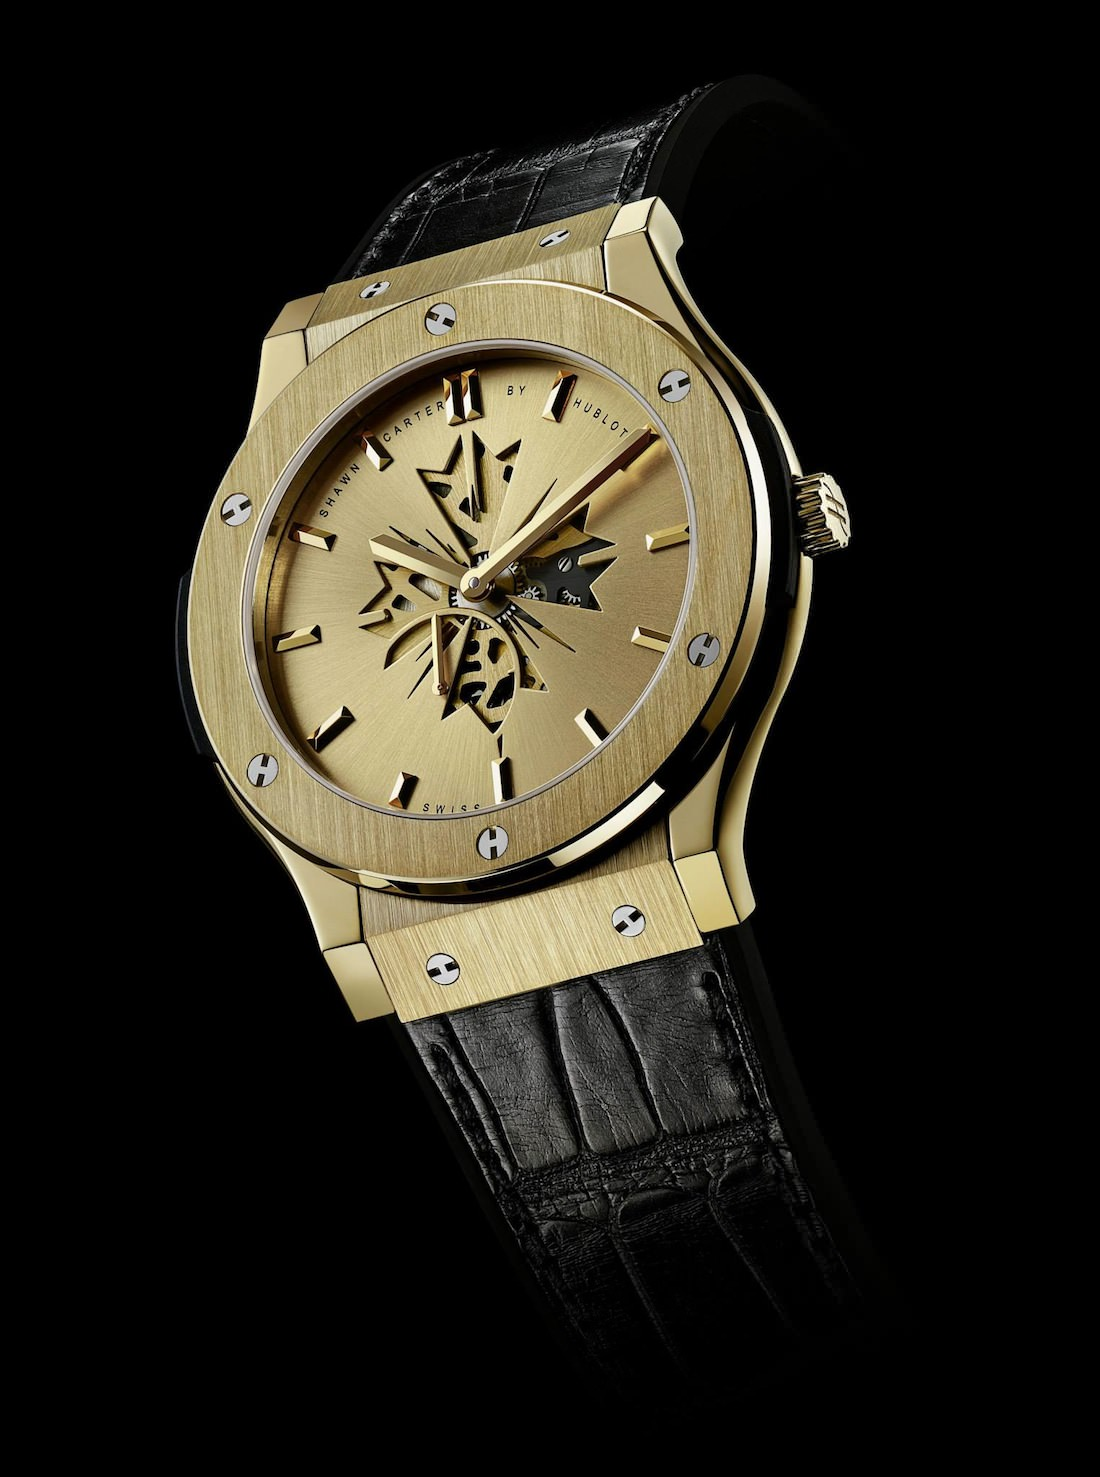 Hublot-Shawn-Carter-jayz-05